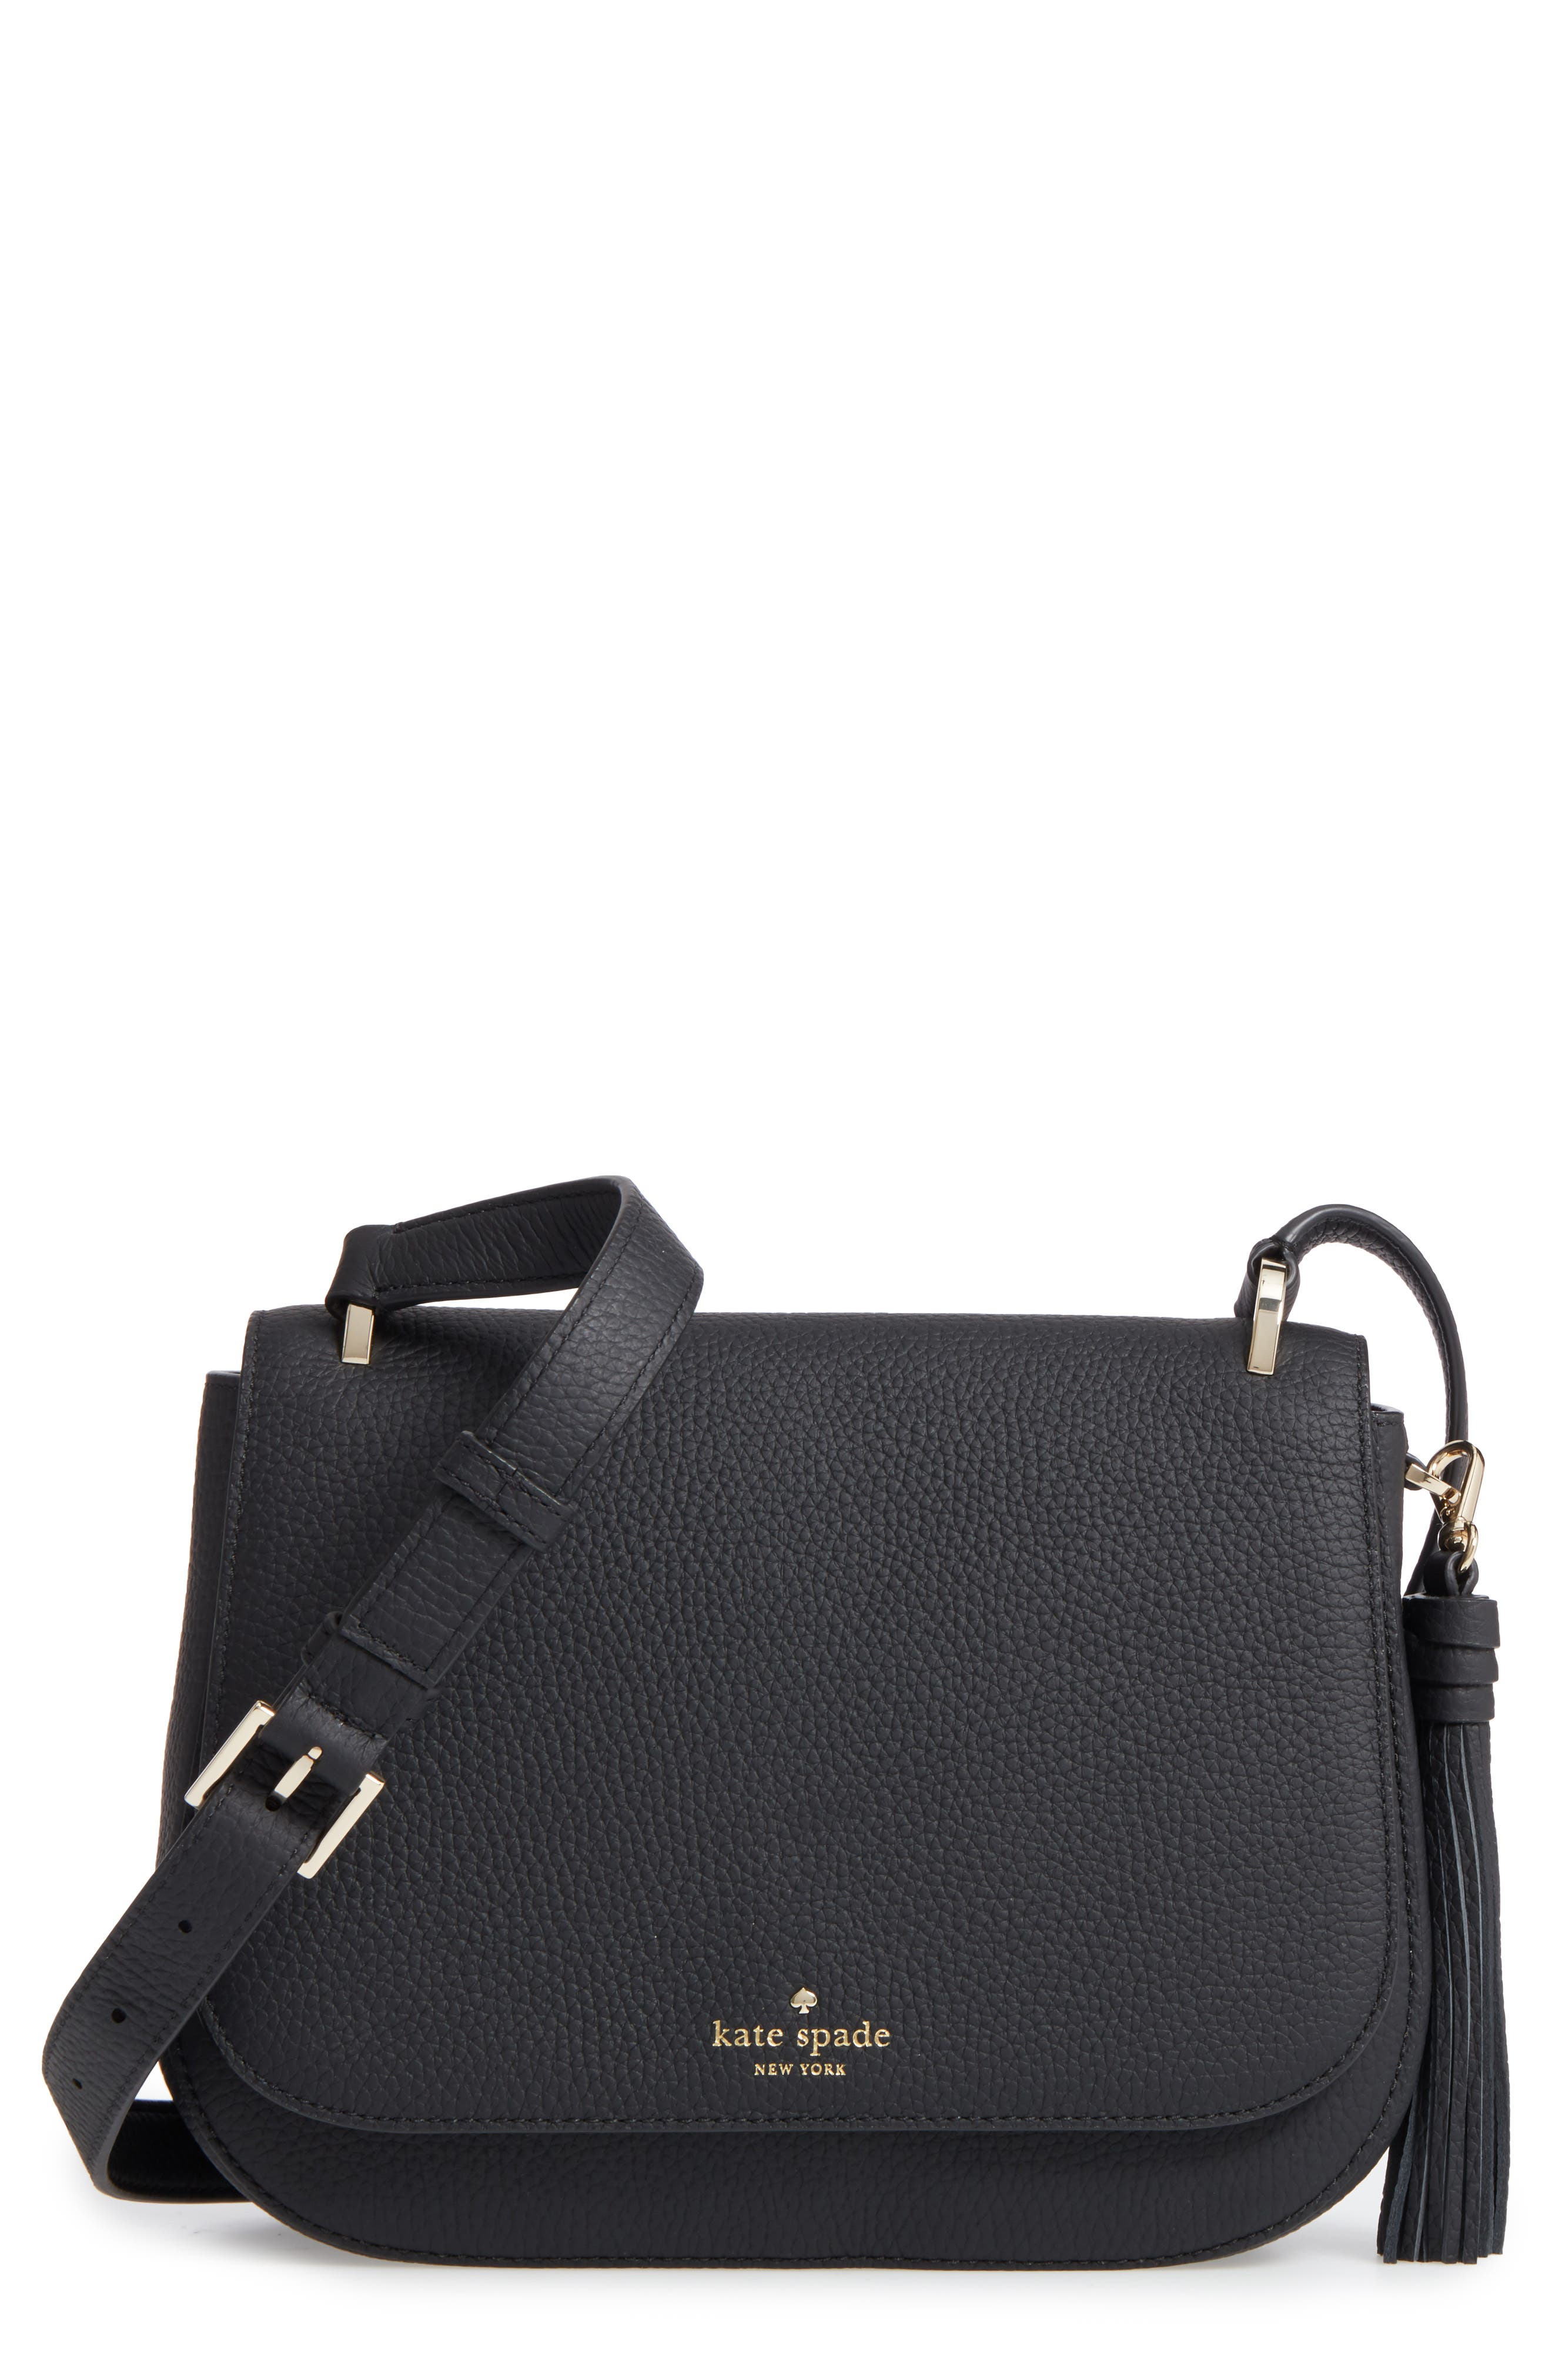 Main Image - kate spade new york daniels drive - tressa leather crossbody bag